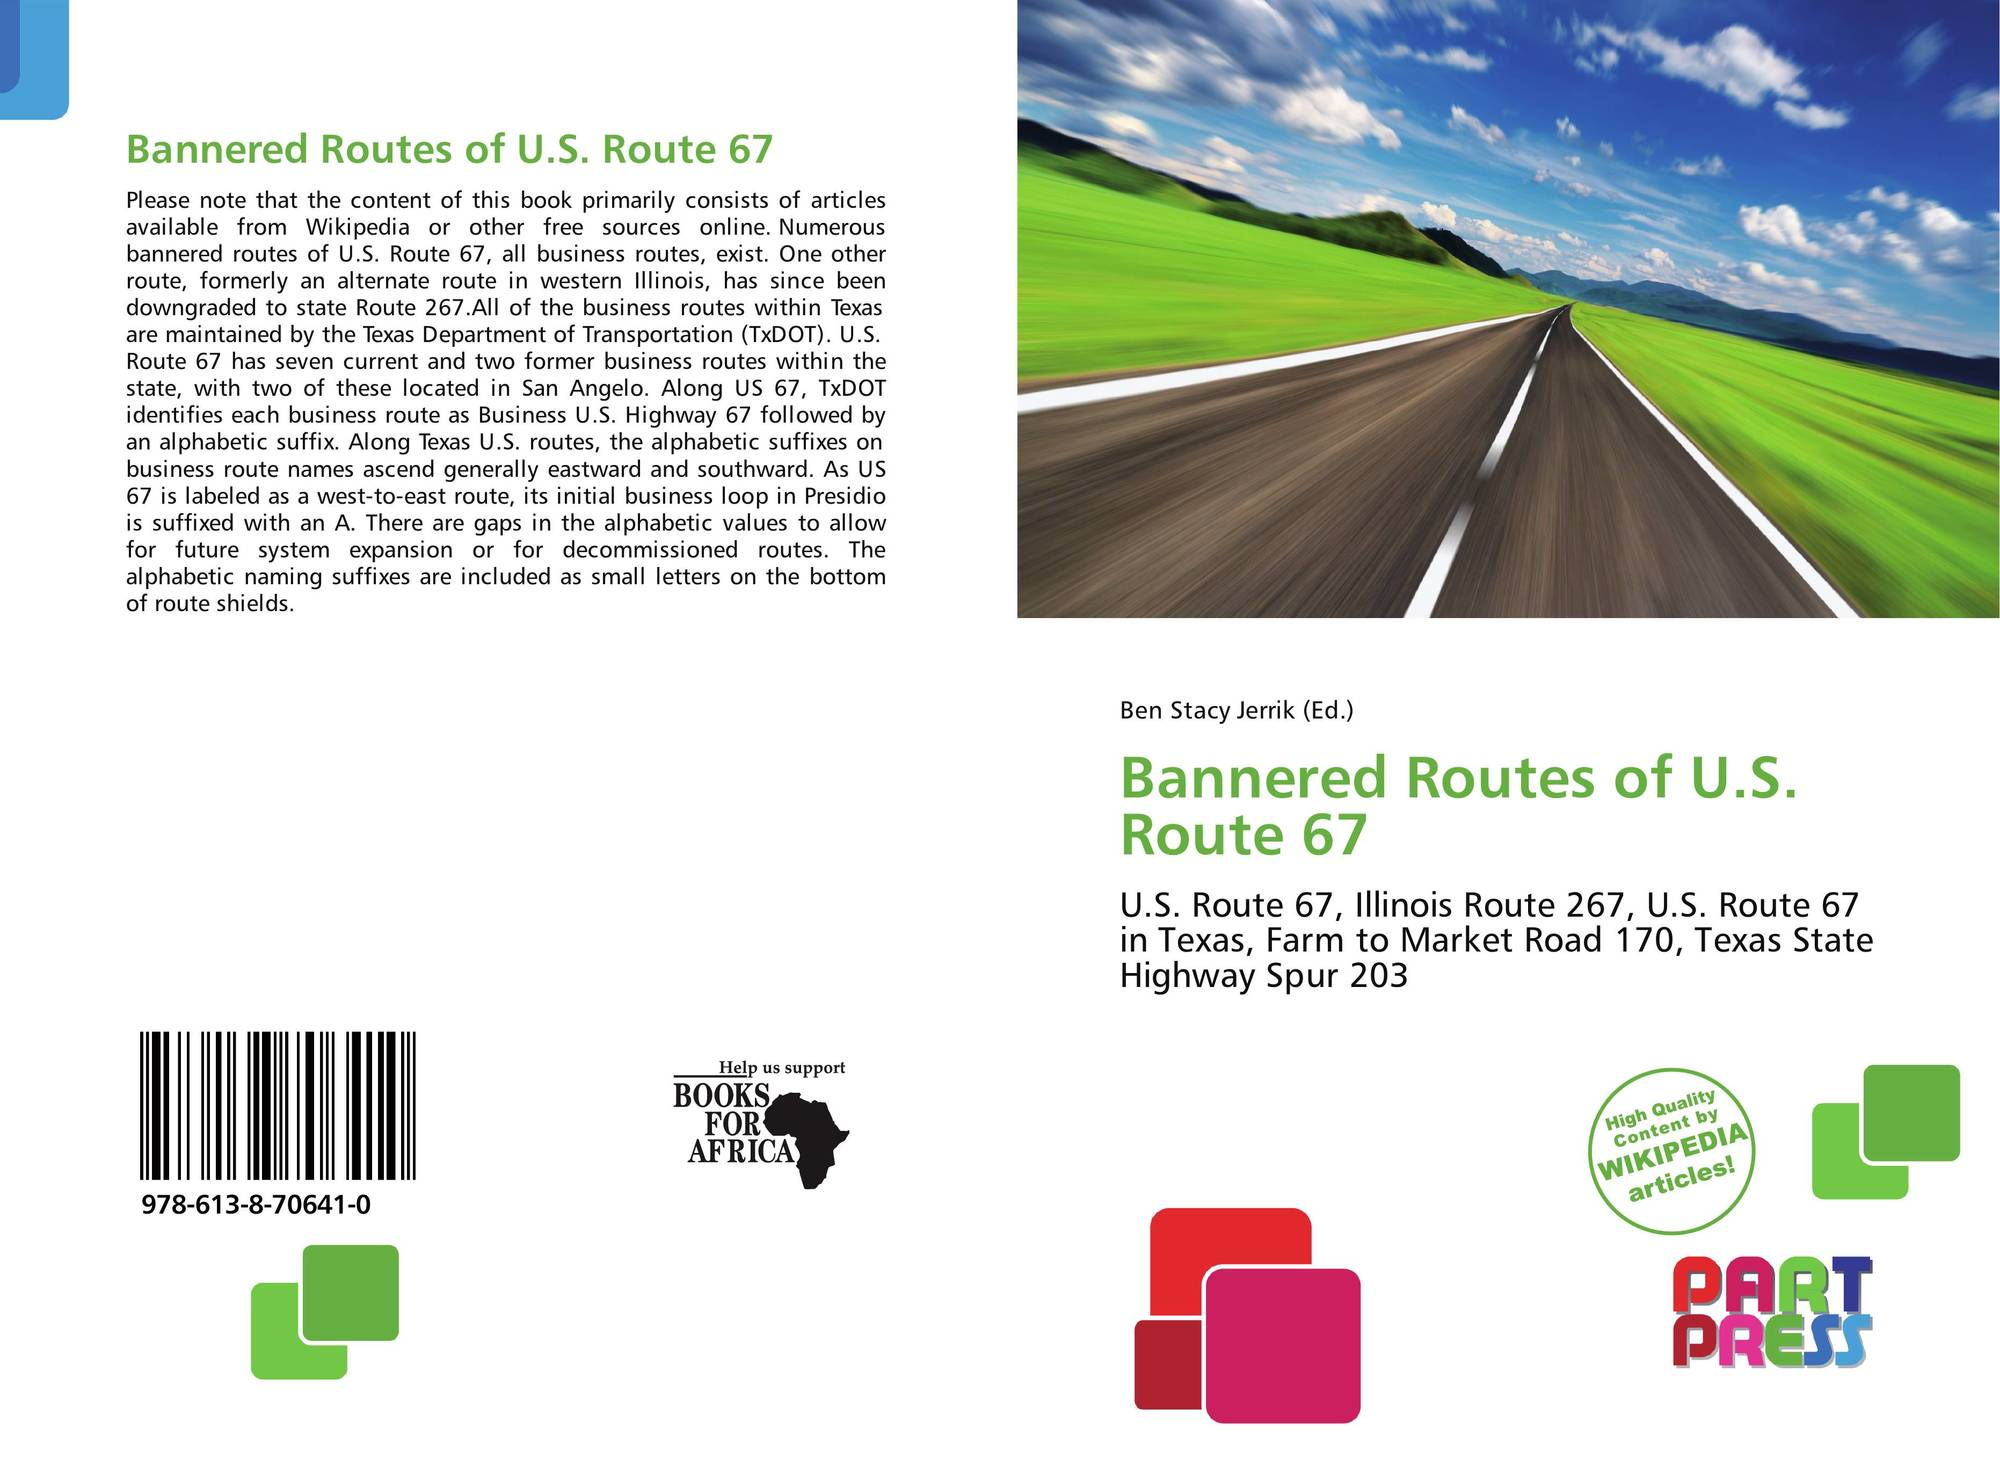 Bannered Routes of U.S. Route 67, 978-613-8-70641-0, 6138706412 ...